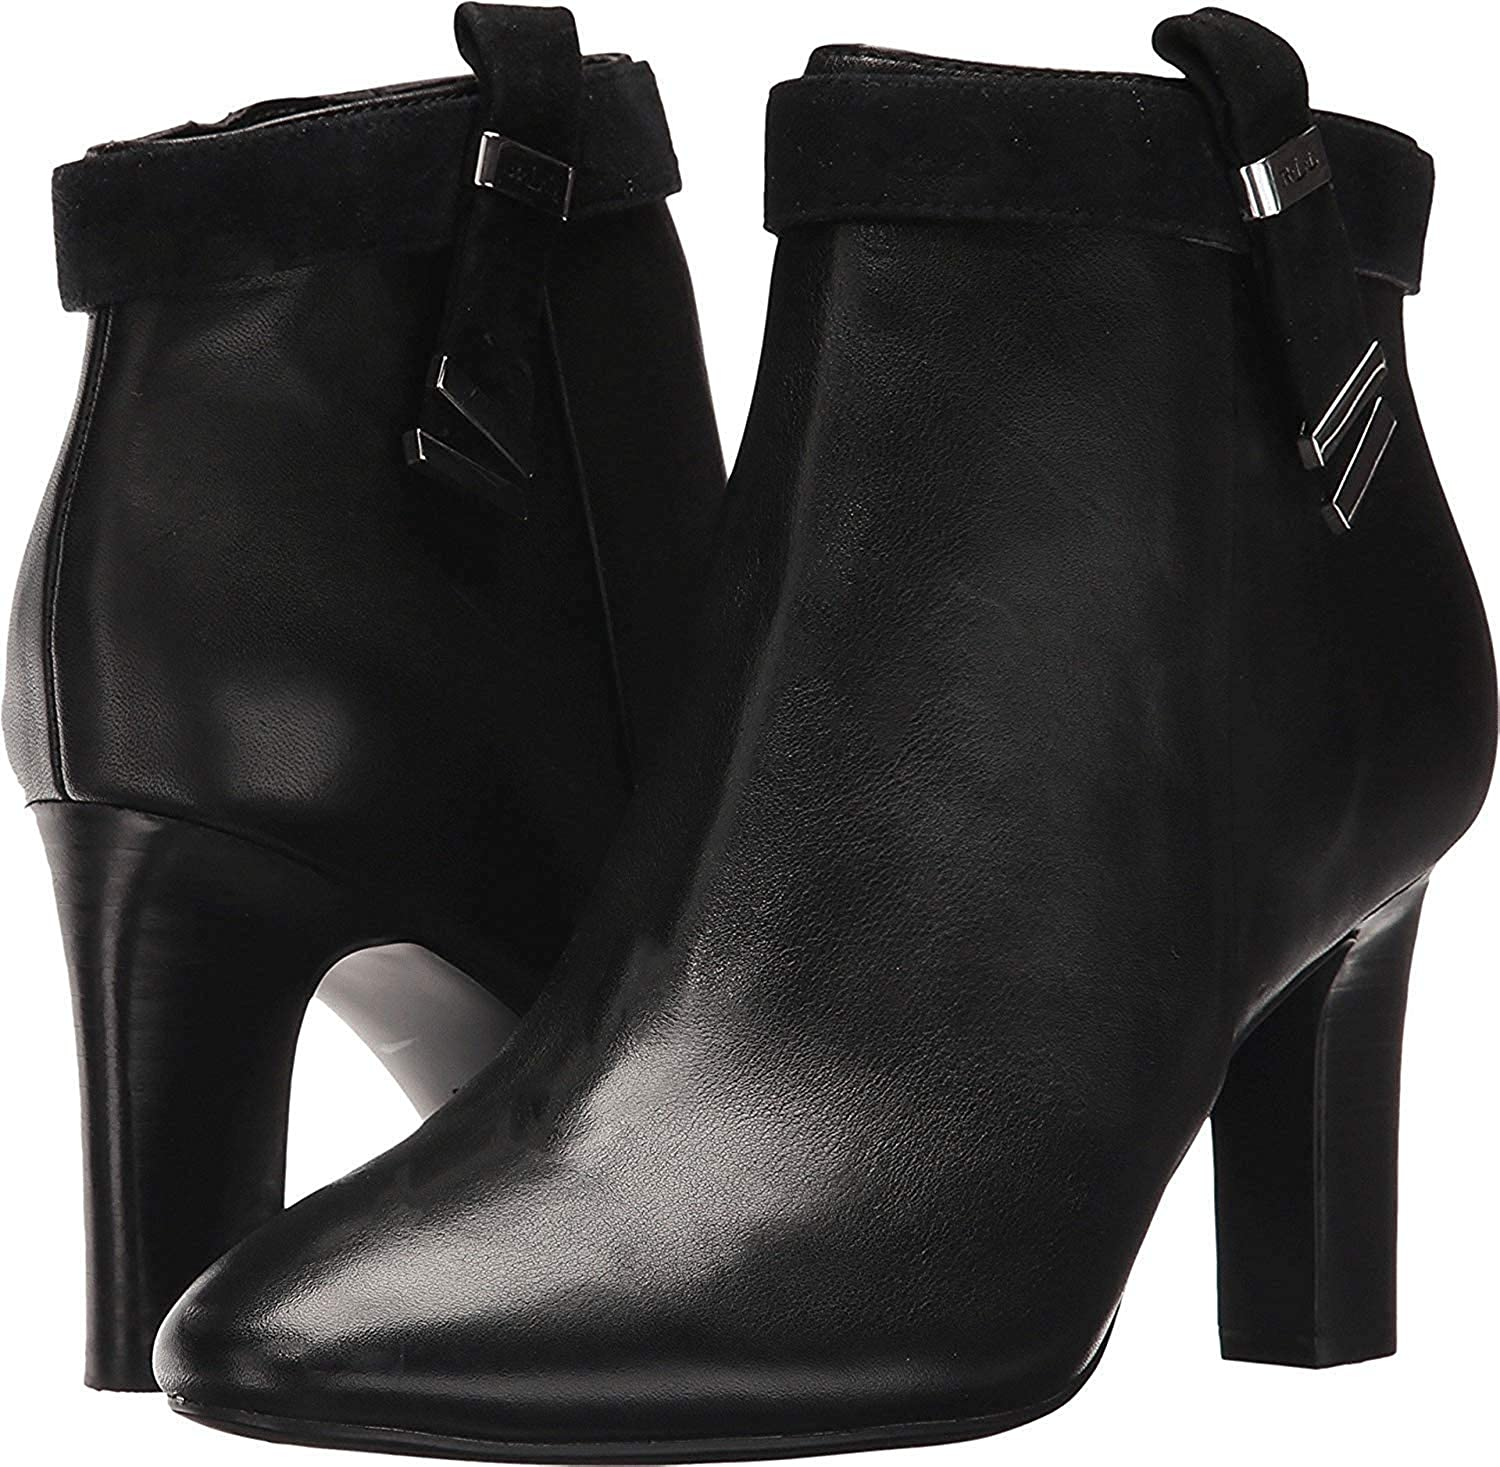 Ralph Lauren Womens Brin Almond Toe Ankle Fashion Boots, Black, Size 6.0